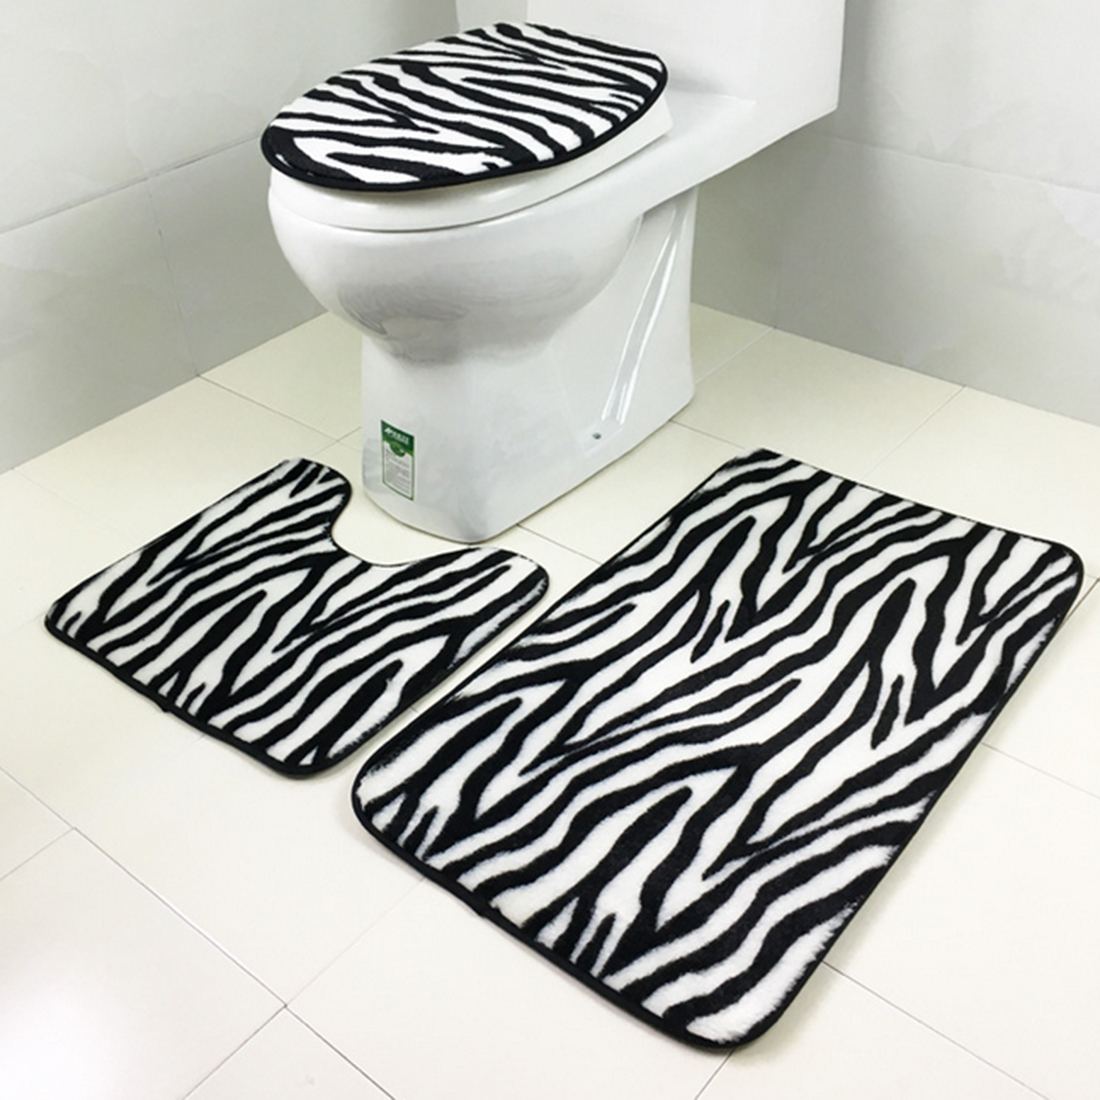 Striped Bathroom Accessories Sets Retail natural Bamboo and